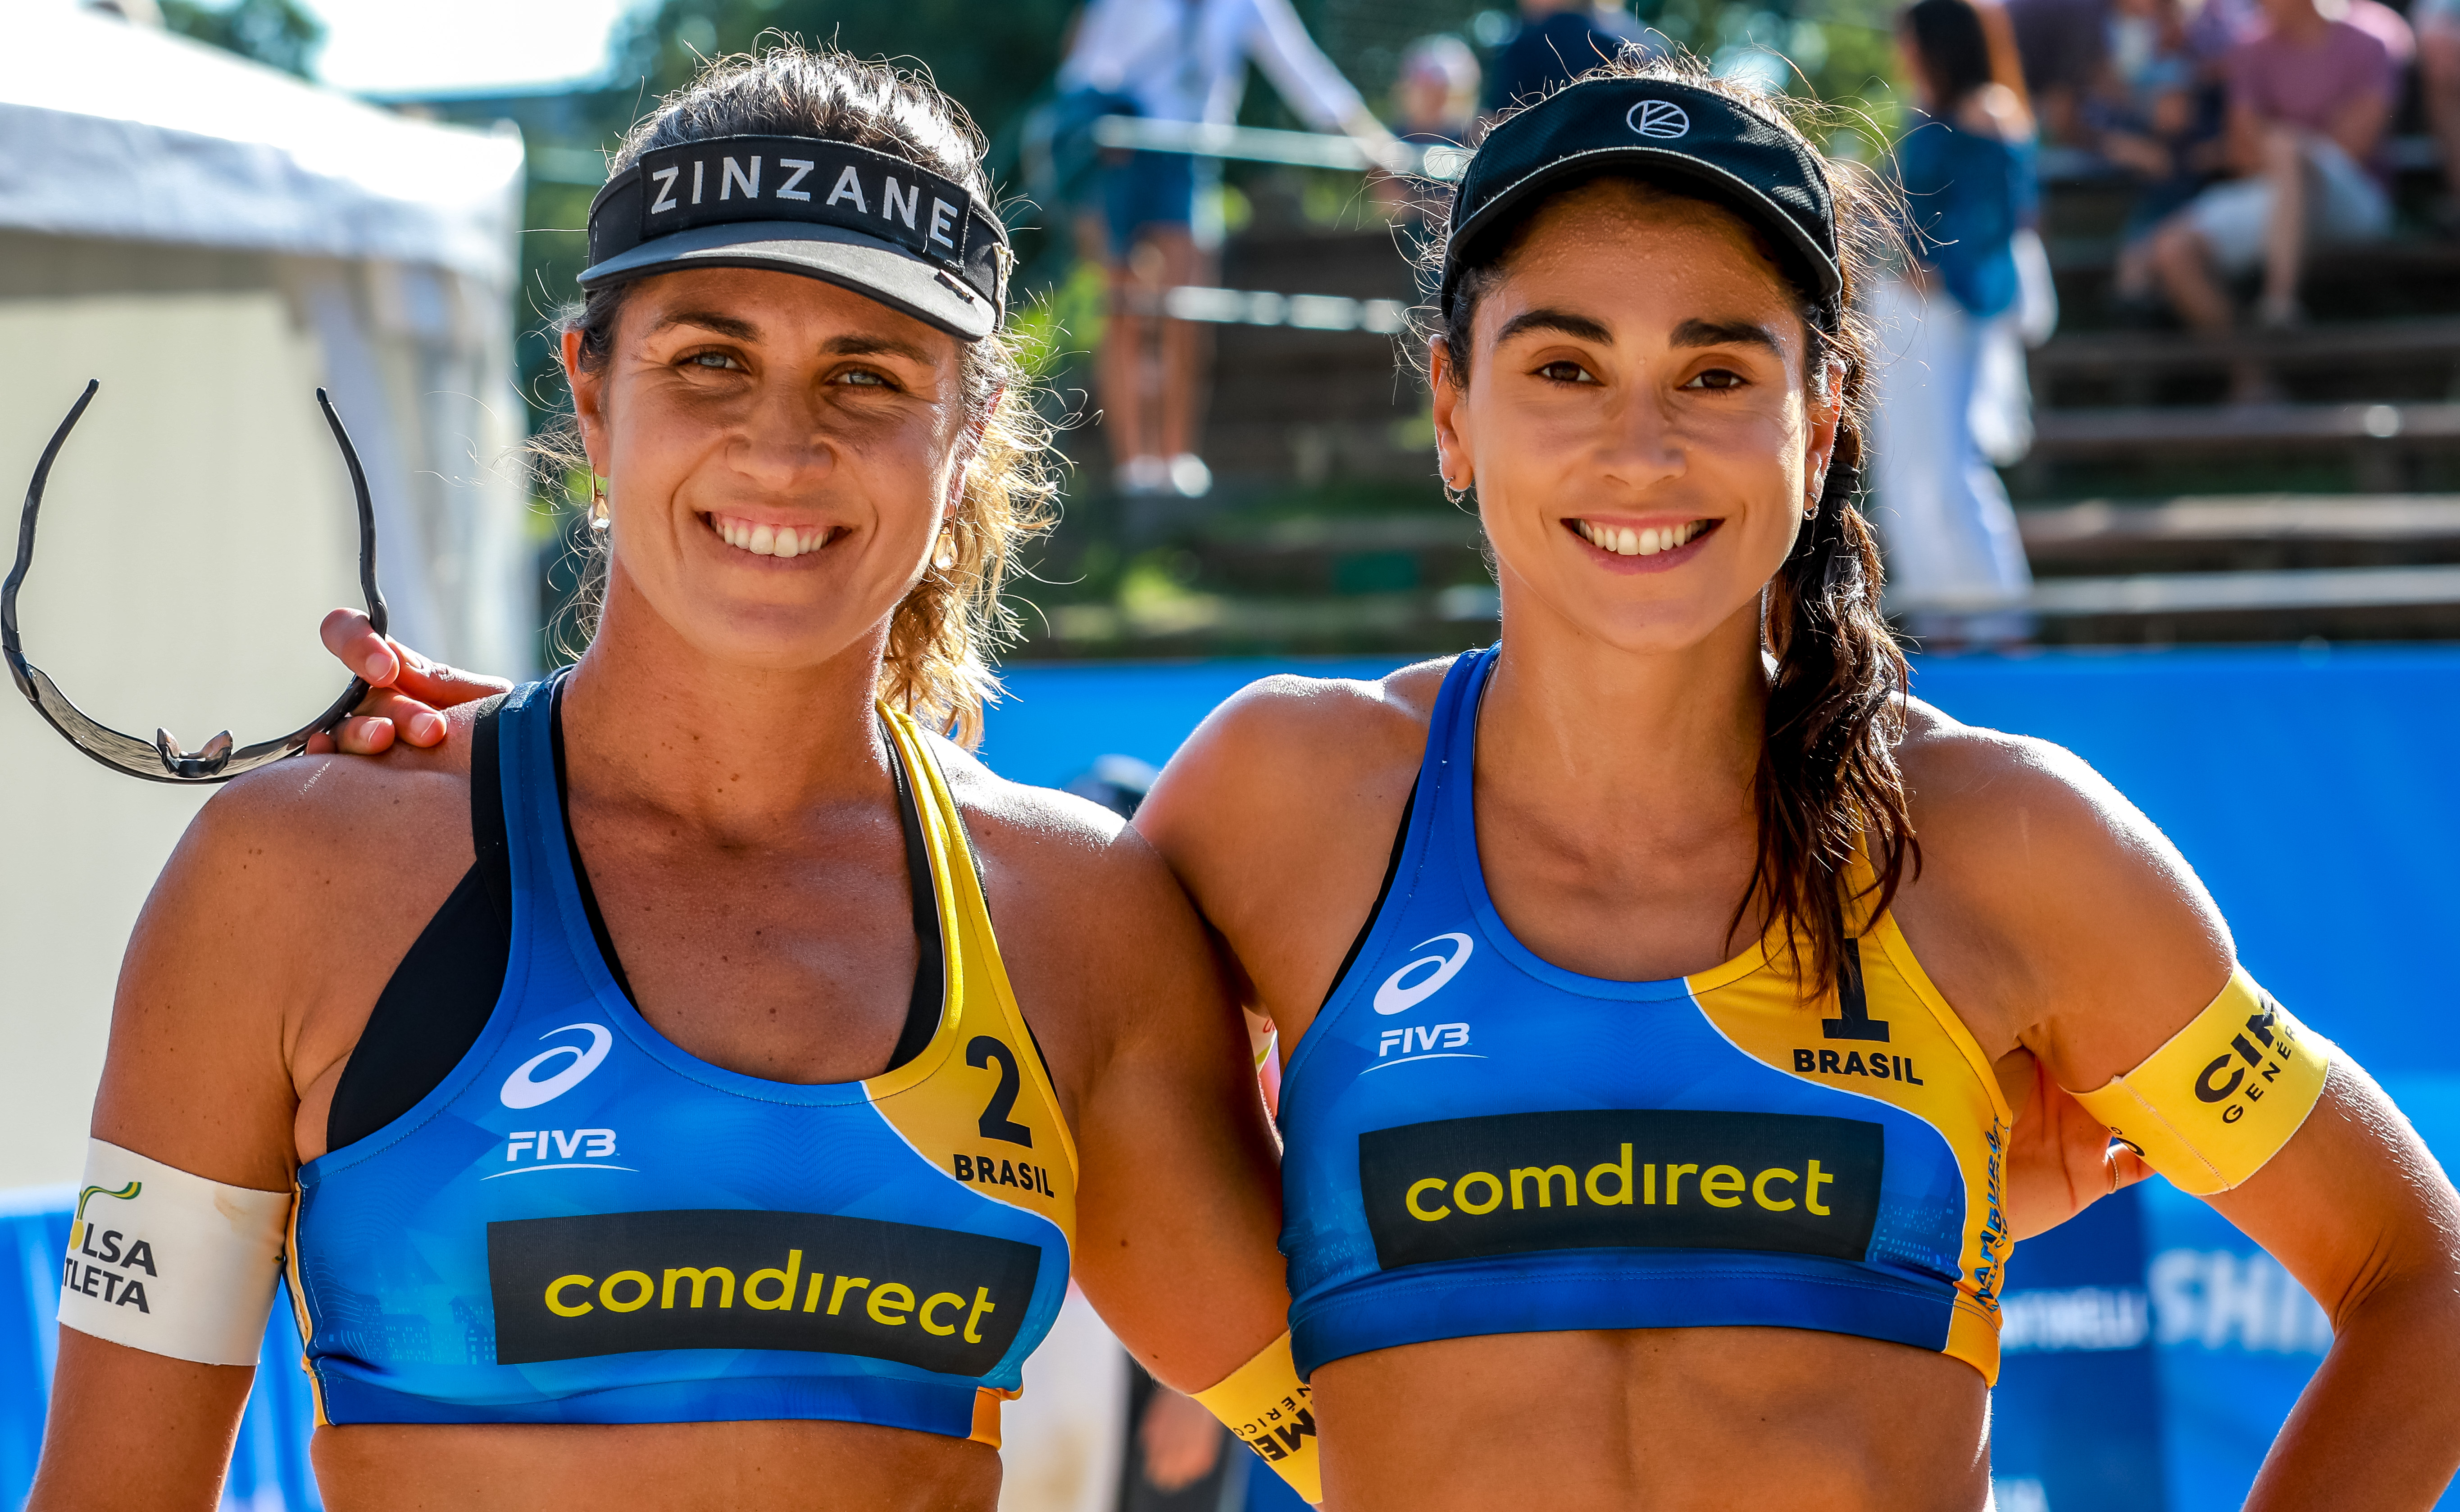 News Laura Ludwig Mother In The Morning Beach Volleyball Winner In The Evening At The Hamburg World Championships